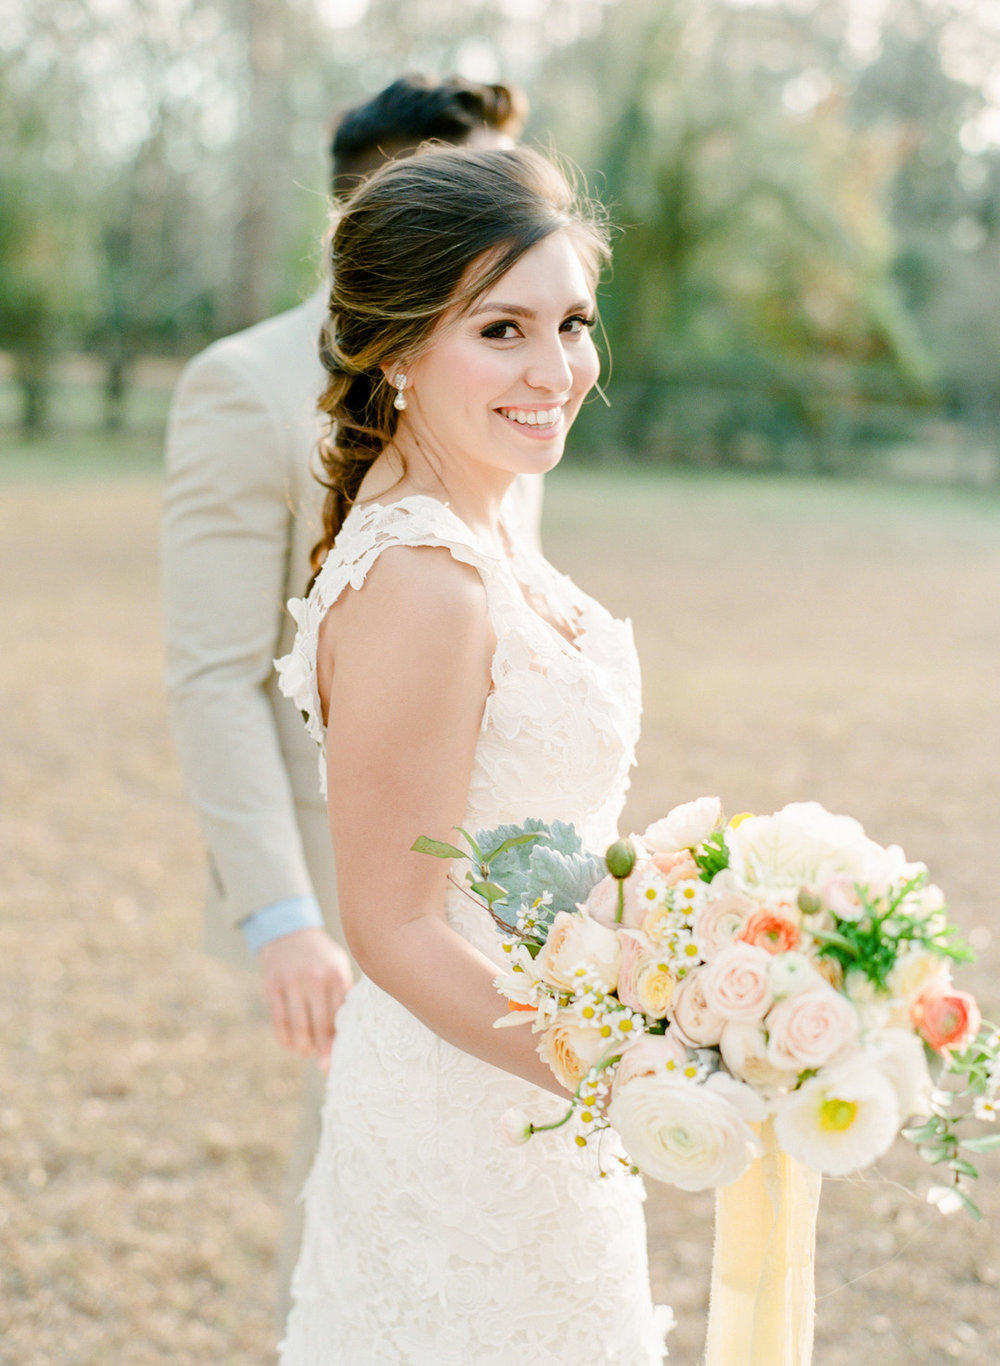 south-carolina-wedding-inspiration-57.jpg